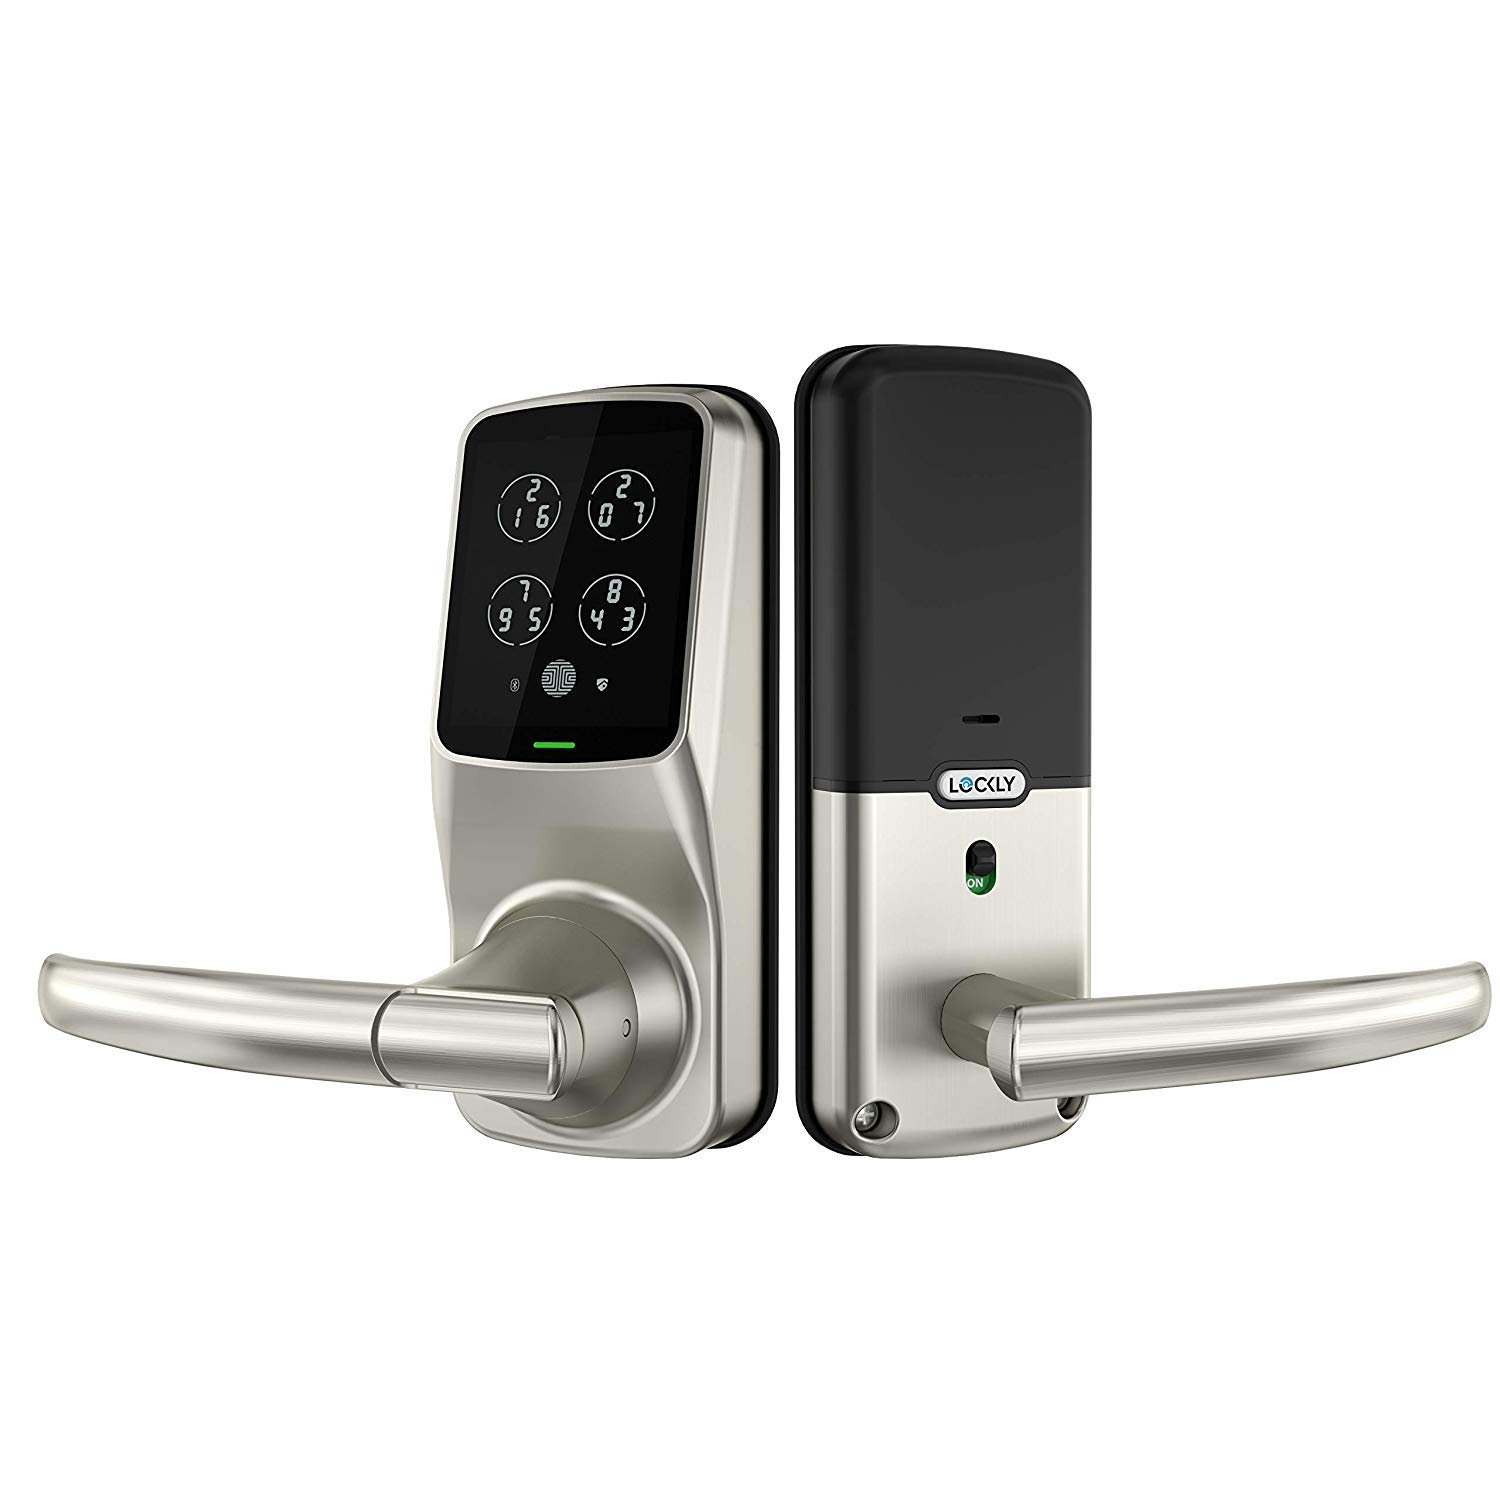 Lockly Bluetooth Keyless Entry Door Smart Lock (PGD628) | Advanced Electronic Touchscreen System | Discrete PIN Code Input | iOS and Android Compatible | Auto Lock | Battery Backup | Latch Edition